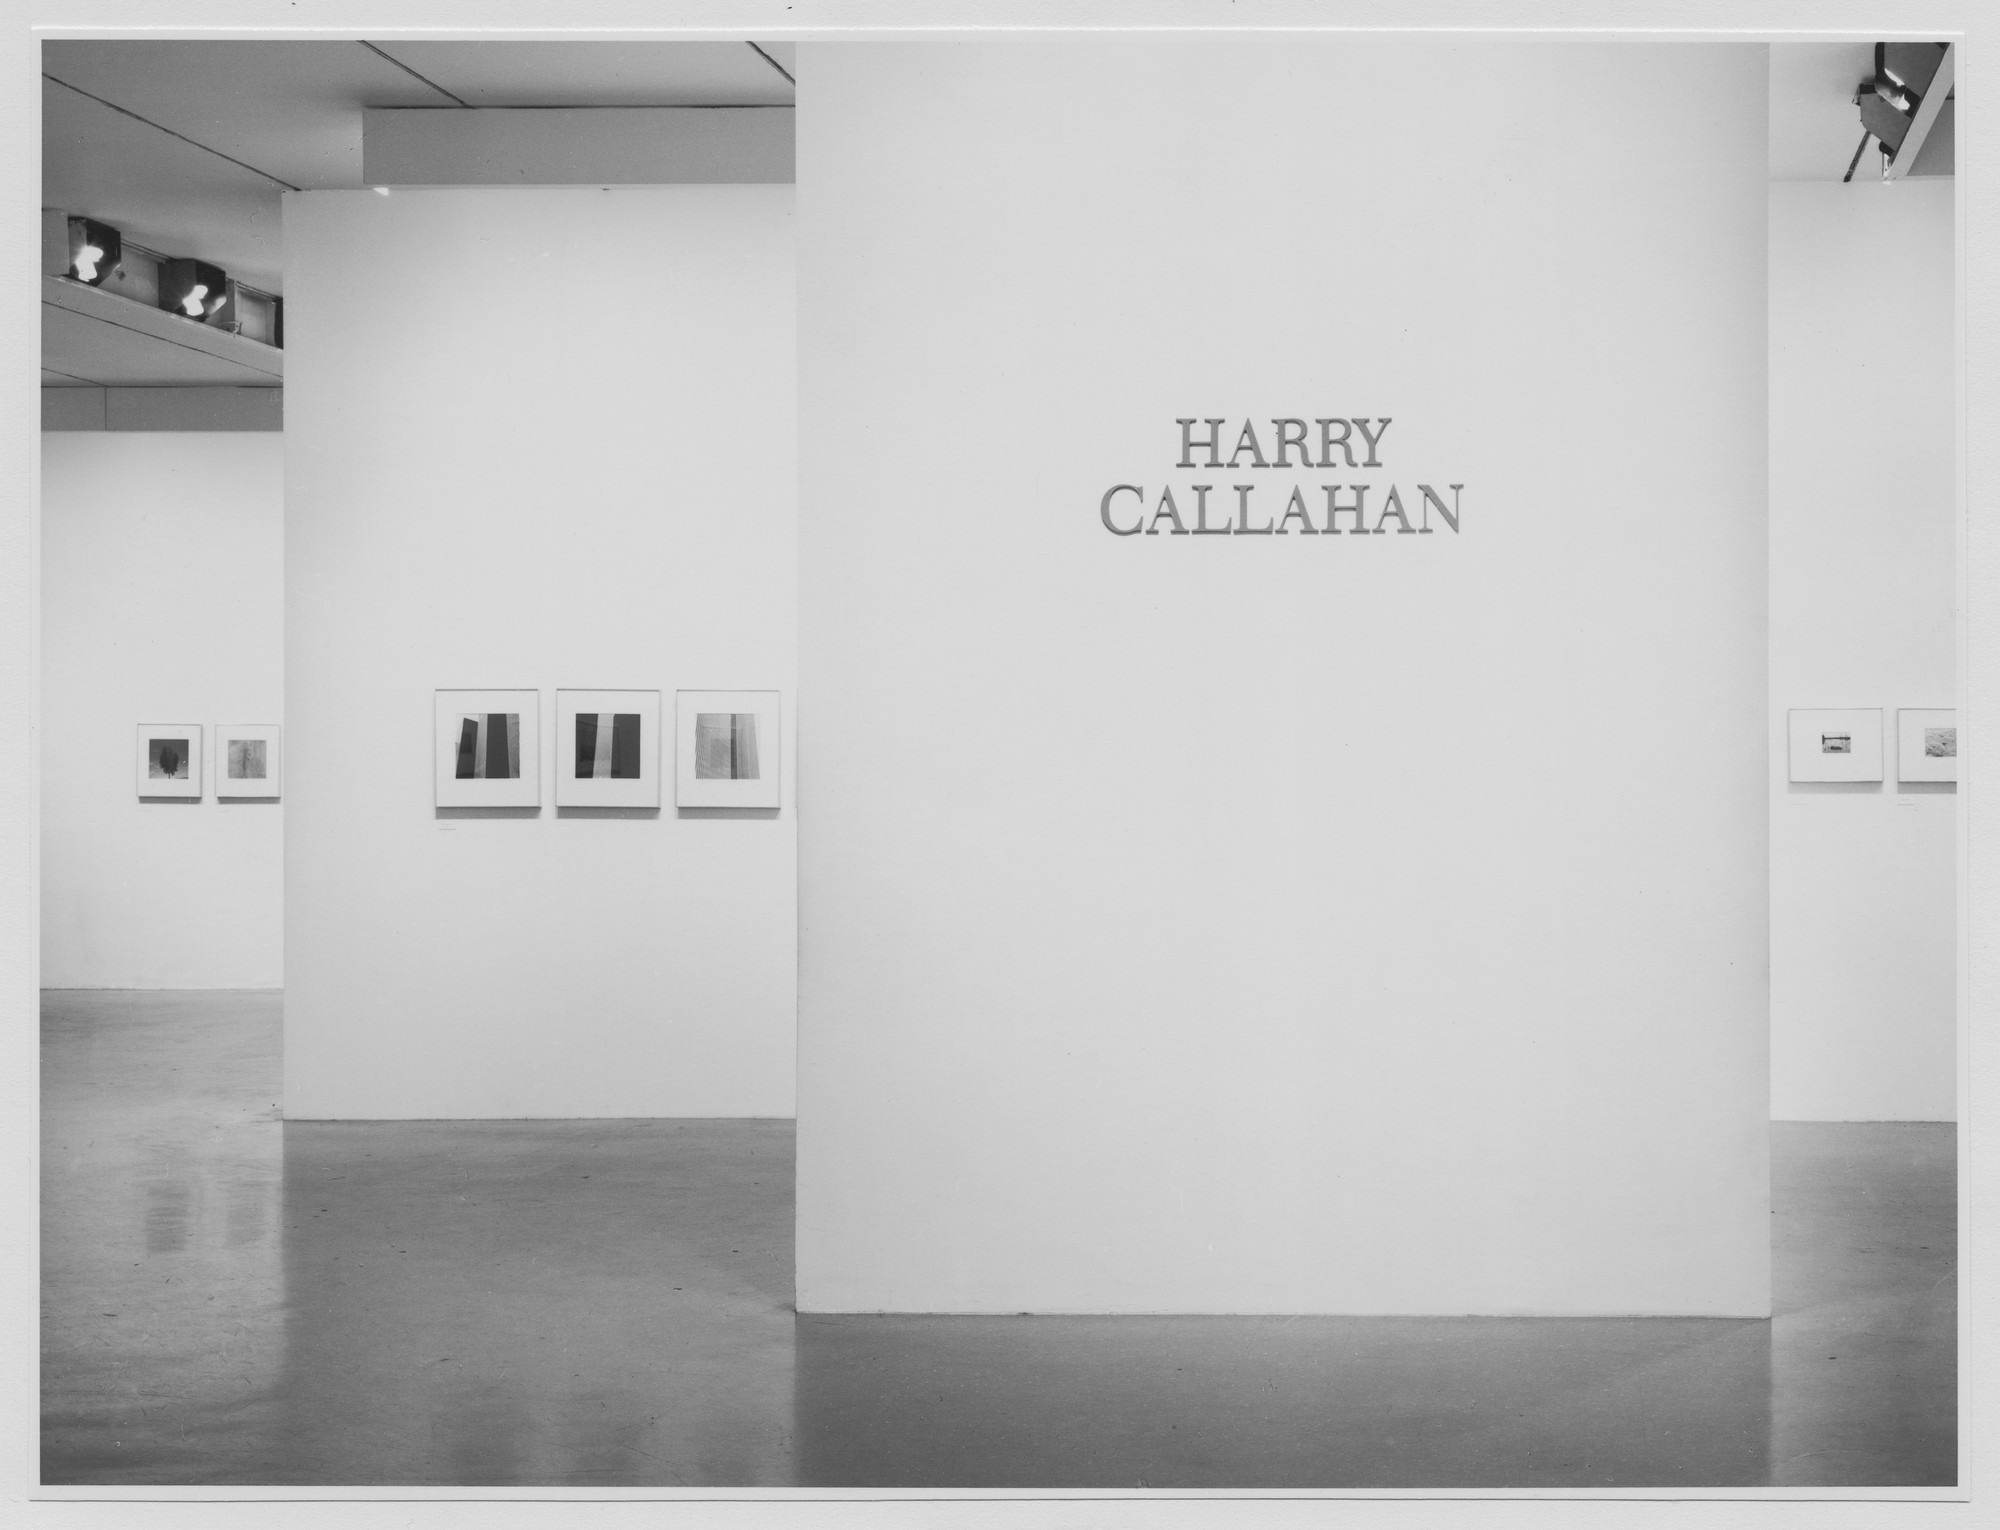 "Installation view of the exhibition, ""Harry Callahan."" December 2, 1976–February 8, 1977. Photographic Archive. The Museum of Modern Art Archives, New York. IN1158.1. Photograph by Katherine Keller."